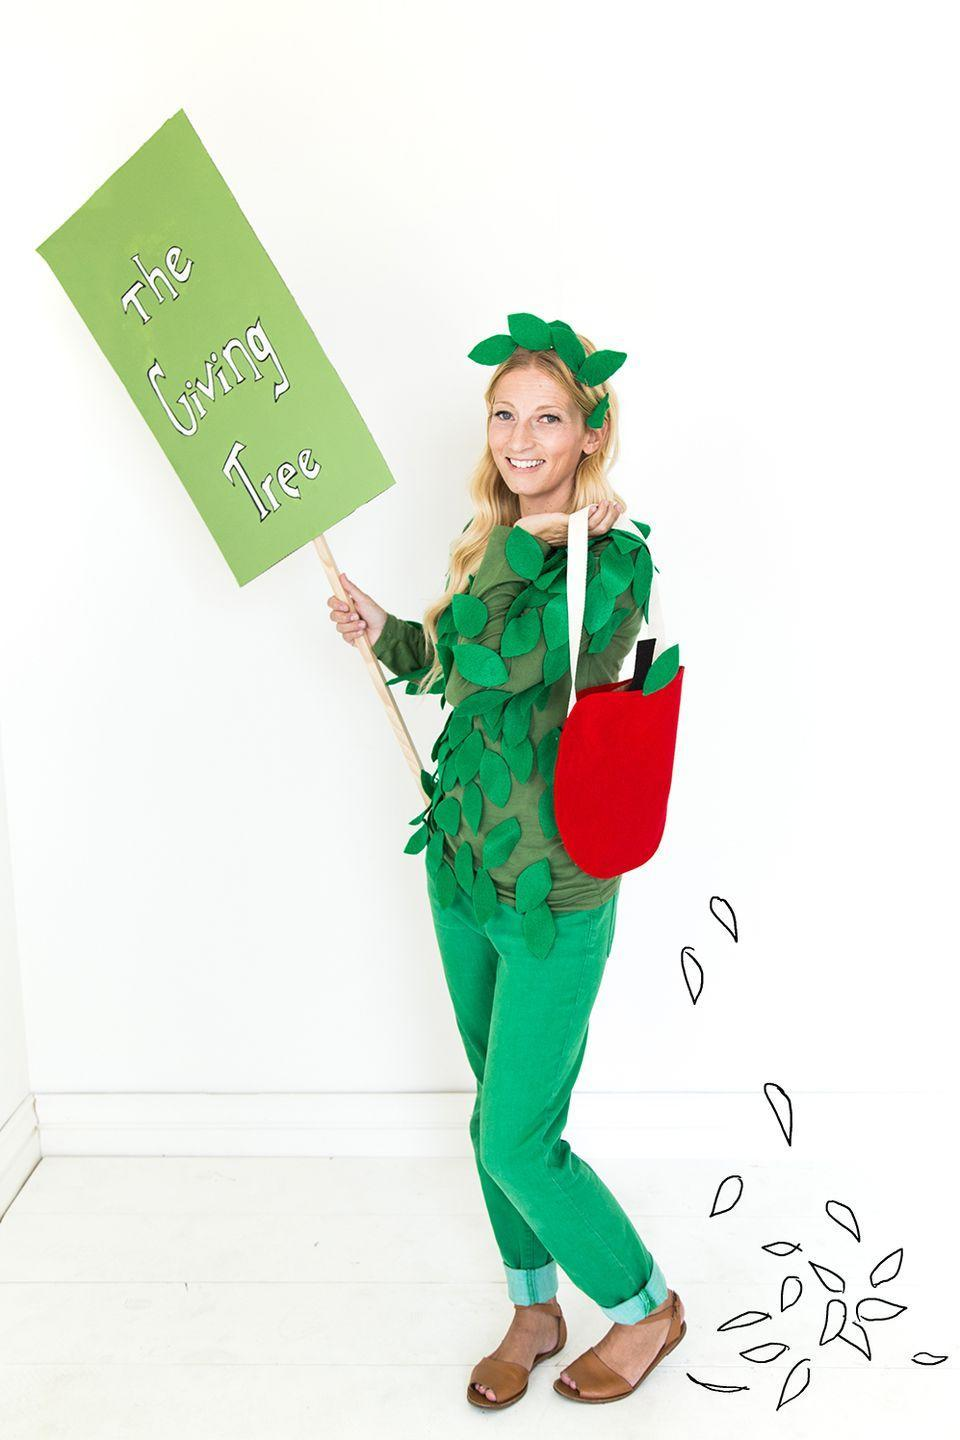 "<p>This clever Halloween costume can be pulled off with zero sewing skills — right down to the no-sew felt apple trick-or-treat bag.<br></p><p><em><a href=""http://thehousethatlarsbuilt.com/2015/10/the-giving-tree-parent-and-child-costumes.html/"" rel=""nofollow noopener"" target=""_blank"" data-ylk=""slk:Get the tutorial from The House That Lars Built »"" class=""link rapid-noclick-resp"">Get the tutorial from The House That Lars Built »</a></em></p>"